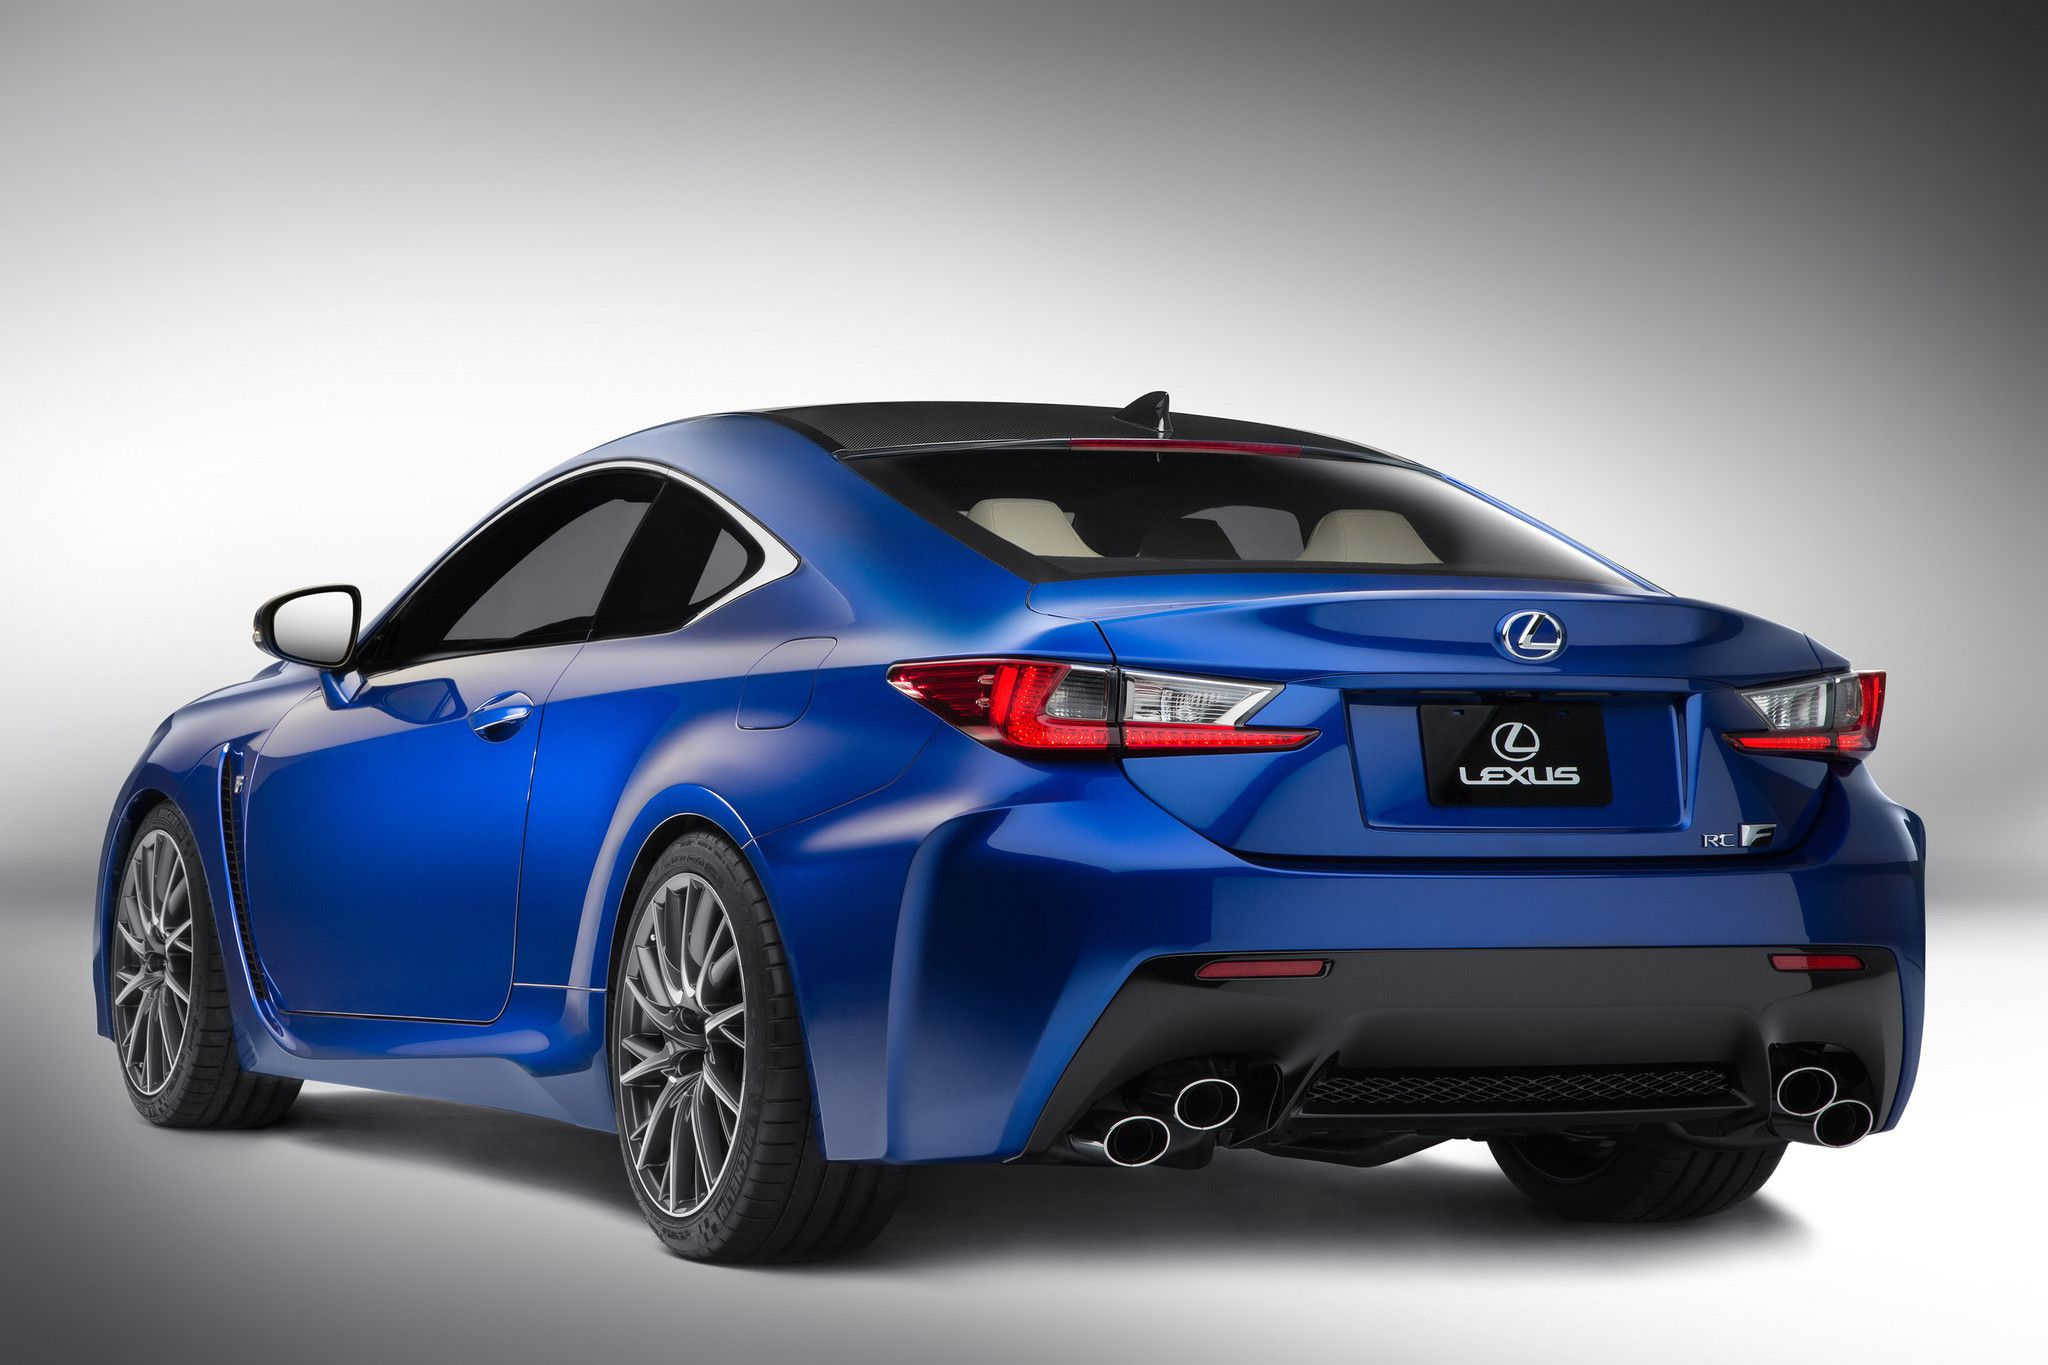 2015 Lexus Rc F Coupe Wallpapers Http Carwallspaper Com 2015